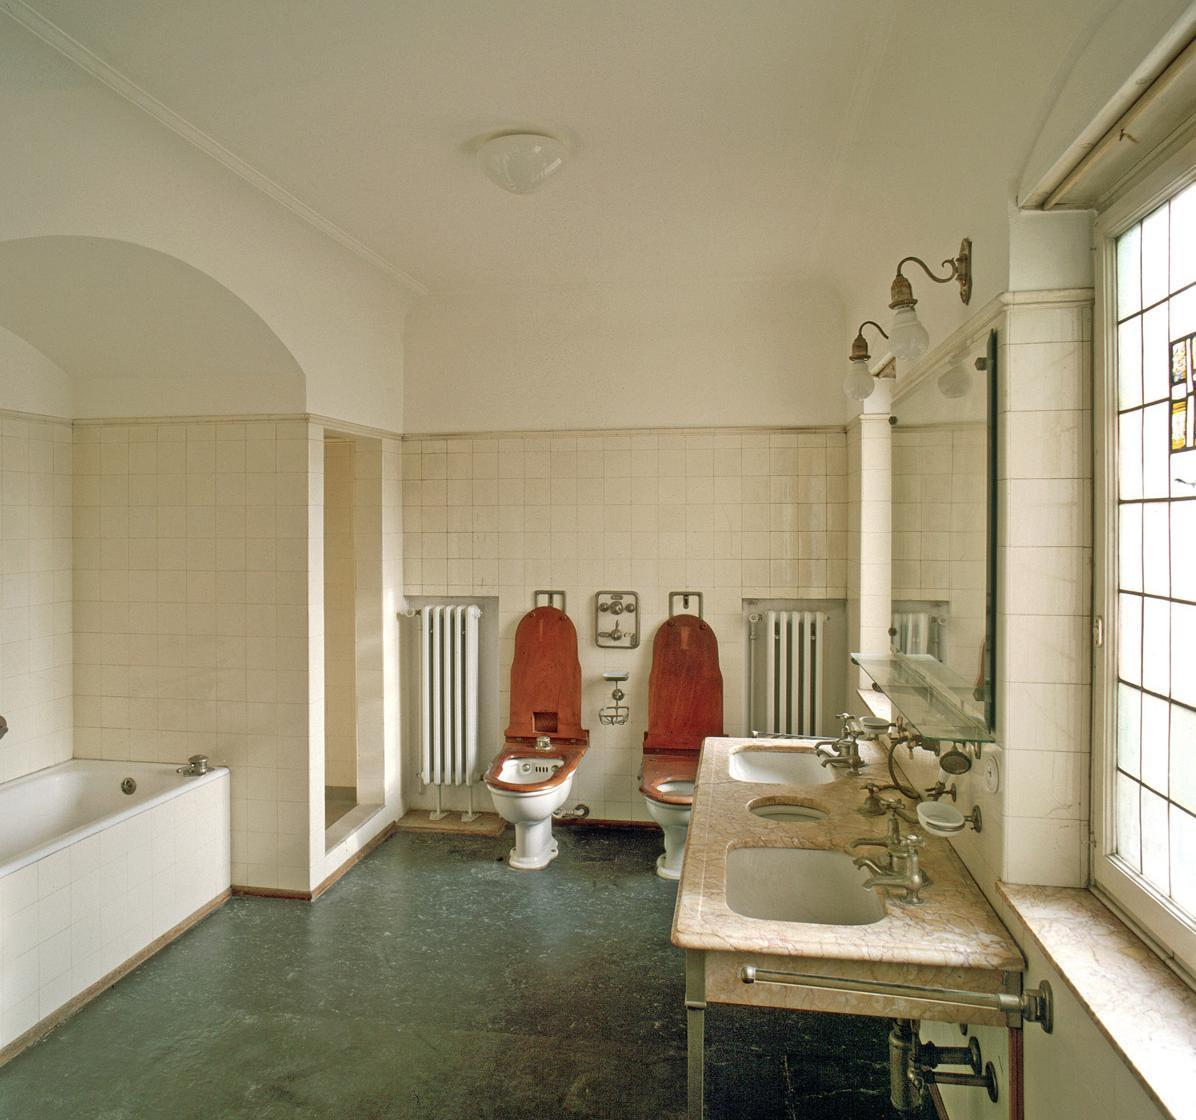 The Queens bathroom at Bebenhausen